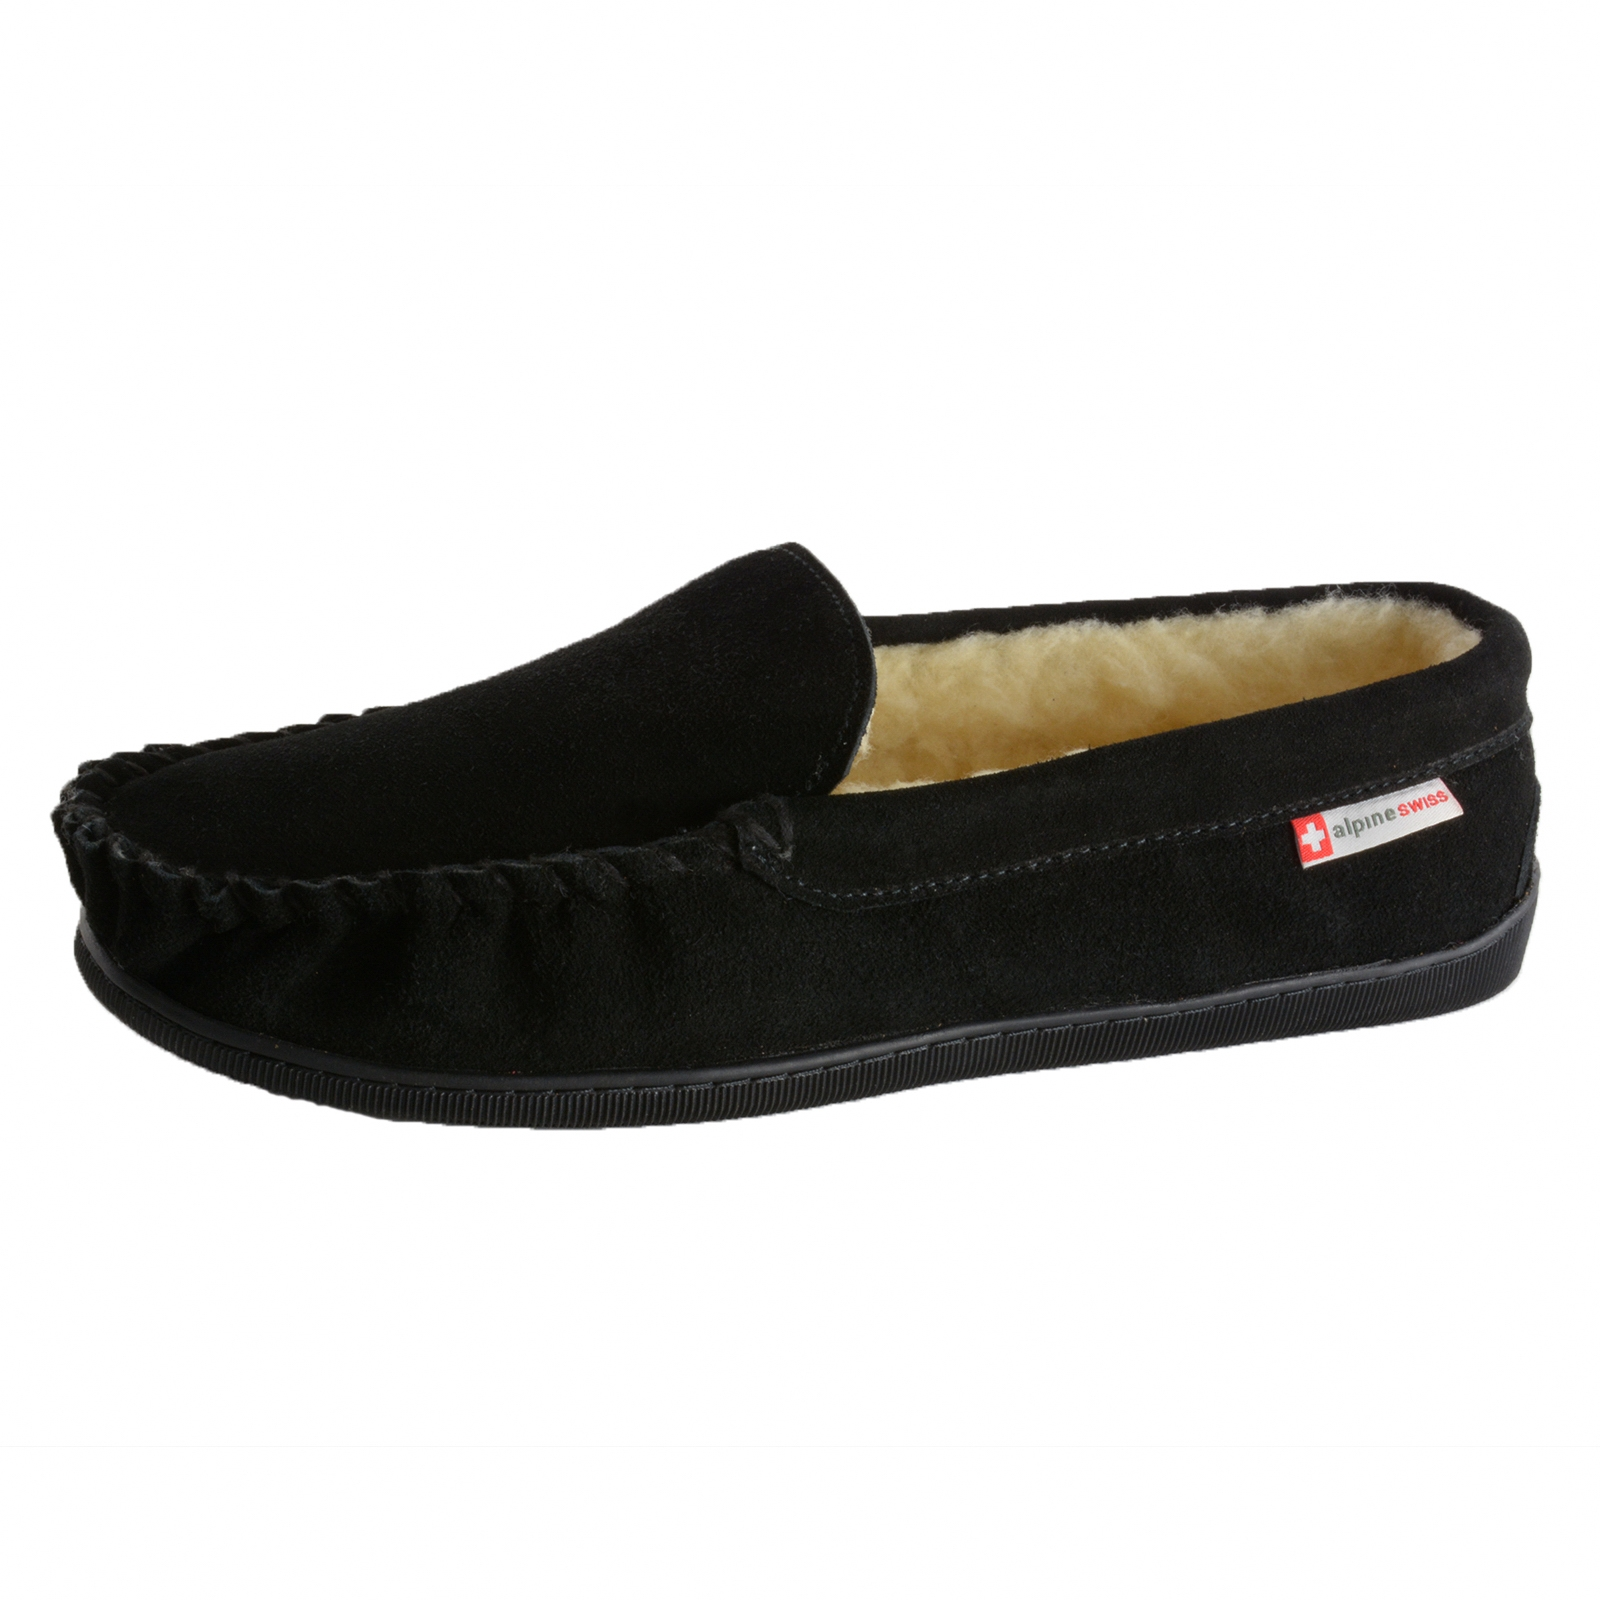 Alpine Swiss Sabine Womens Suede Shearling Moccasin Slippers House Shoes Slip